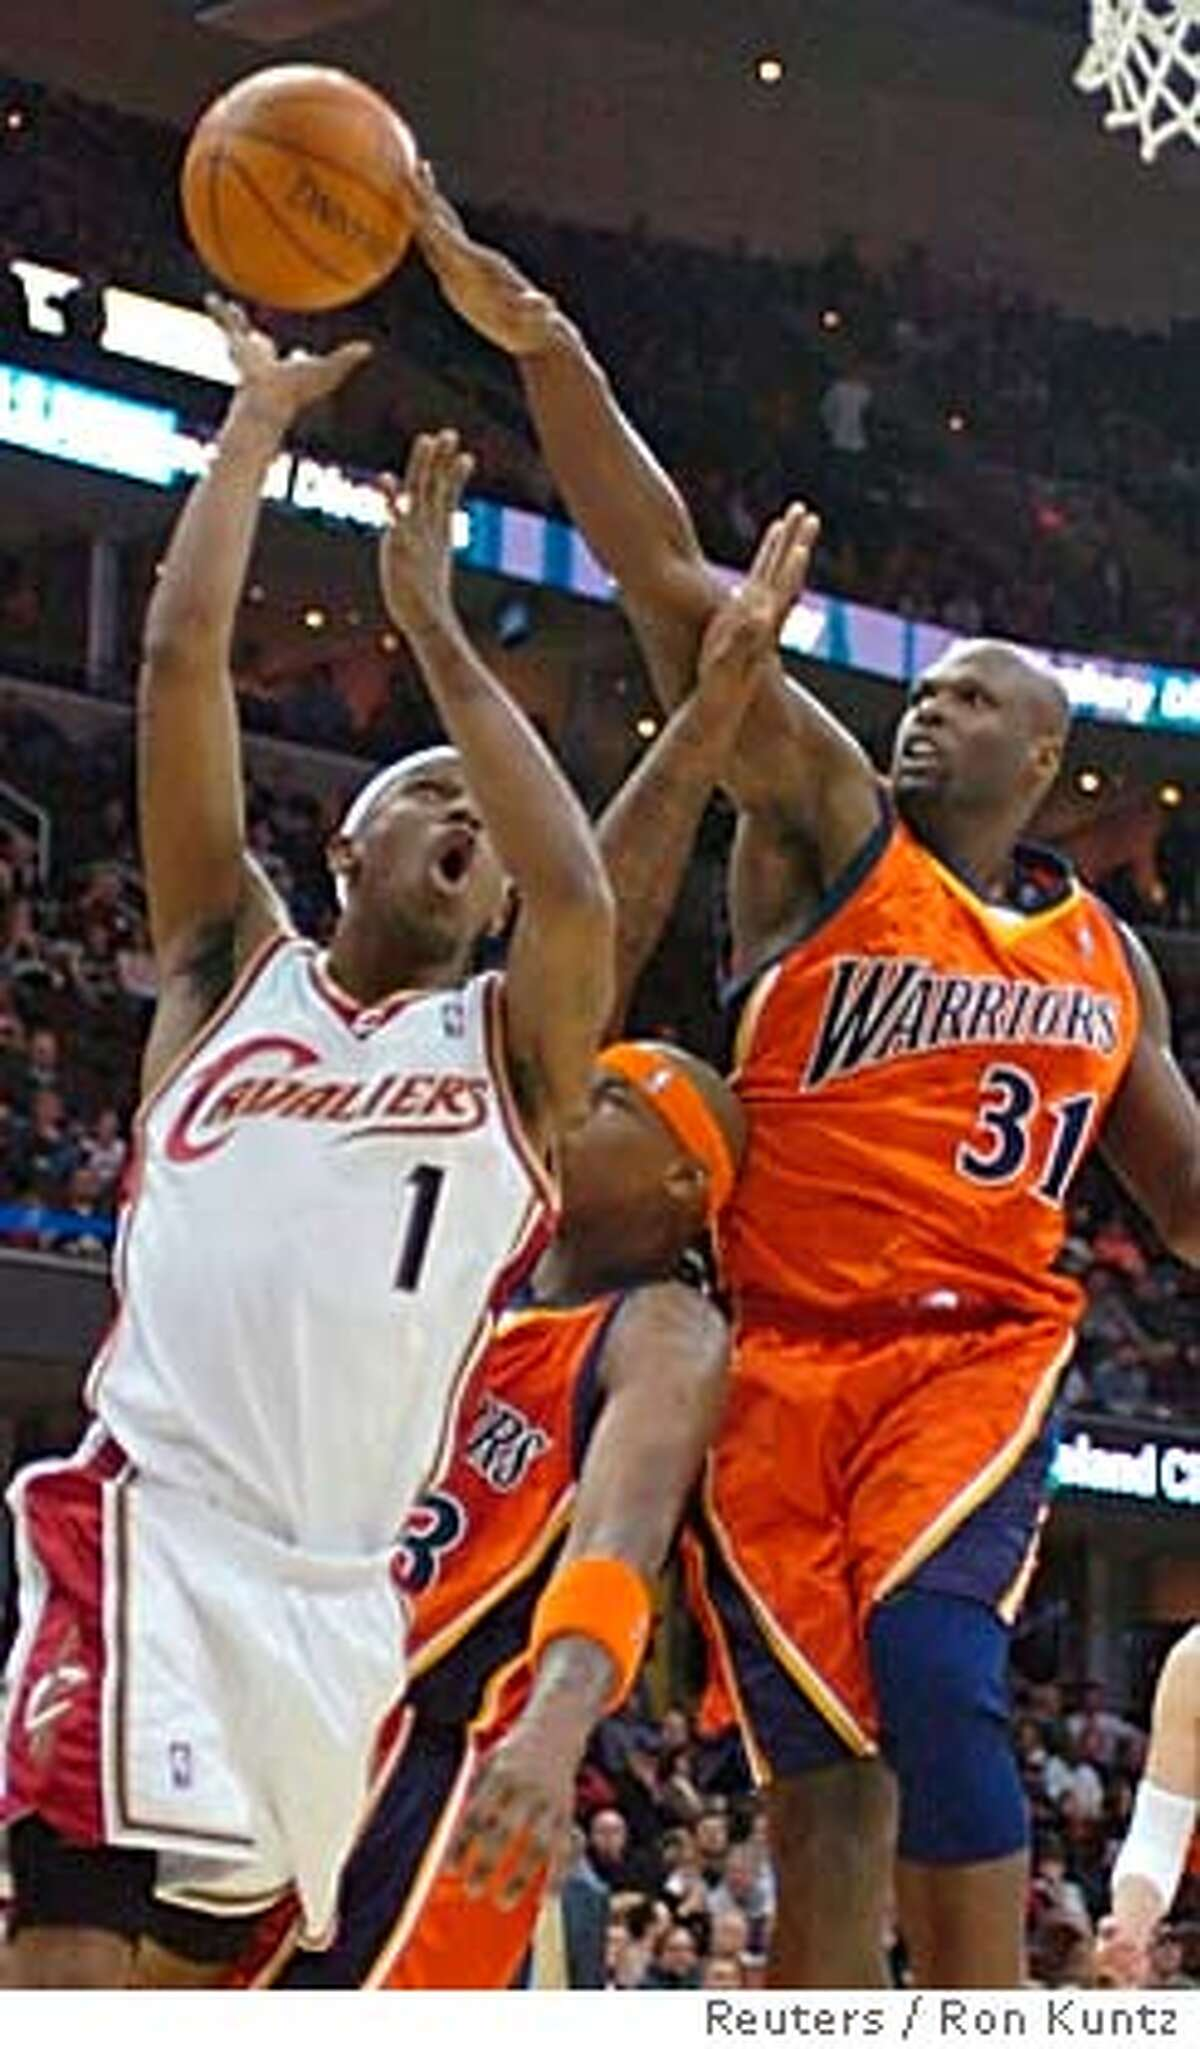 Adonal Foyle (R) of the Golden State Warriors blocks a shot by Daniel Gibson of the Cleveland Cavaliers in the first quarter of their NBA game in Cleveland, Ohio January 30, 2007. REUTERS/Ron Kuntz (UNITED STATES) 0